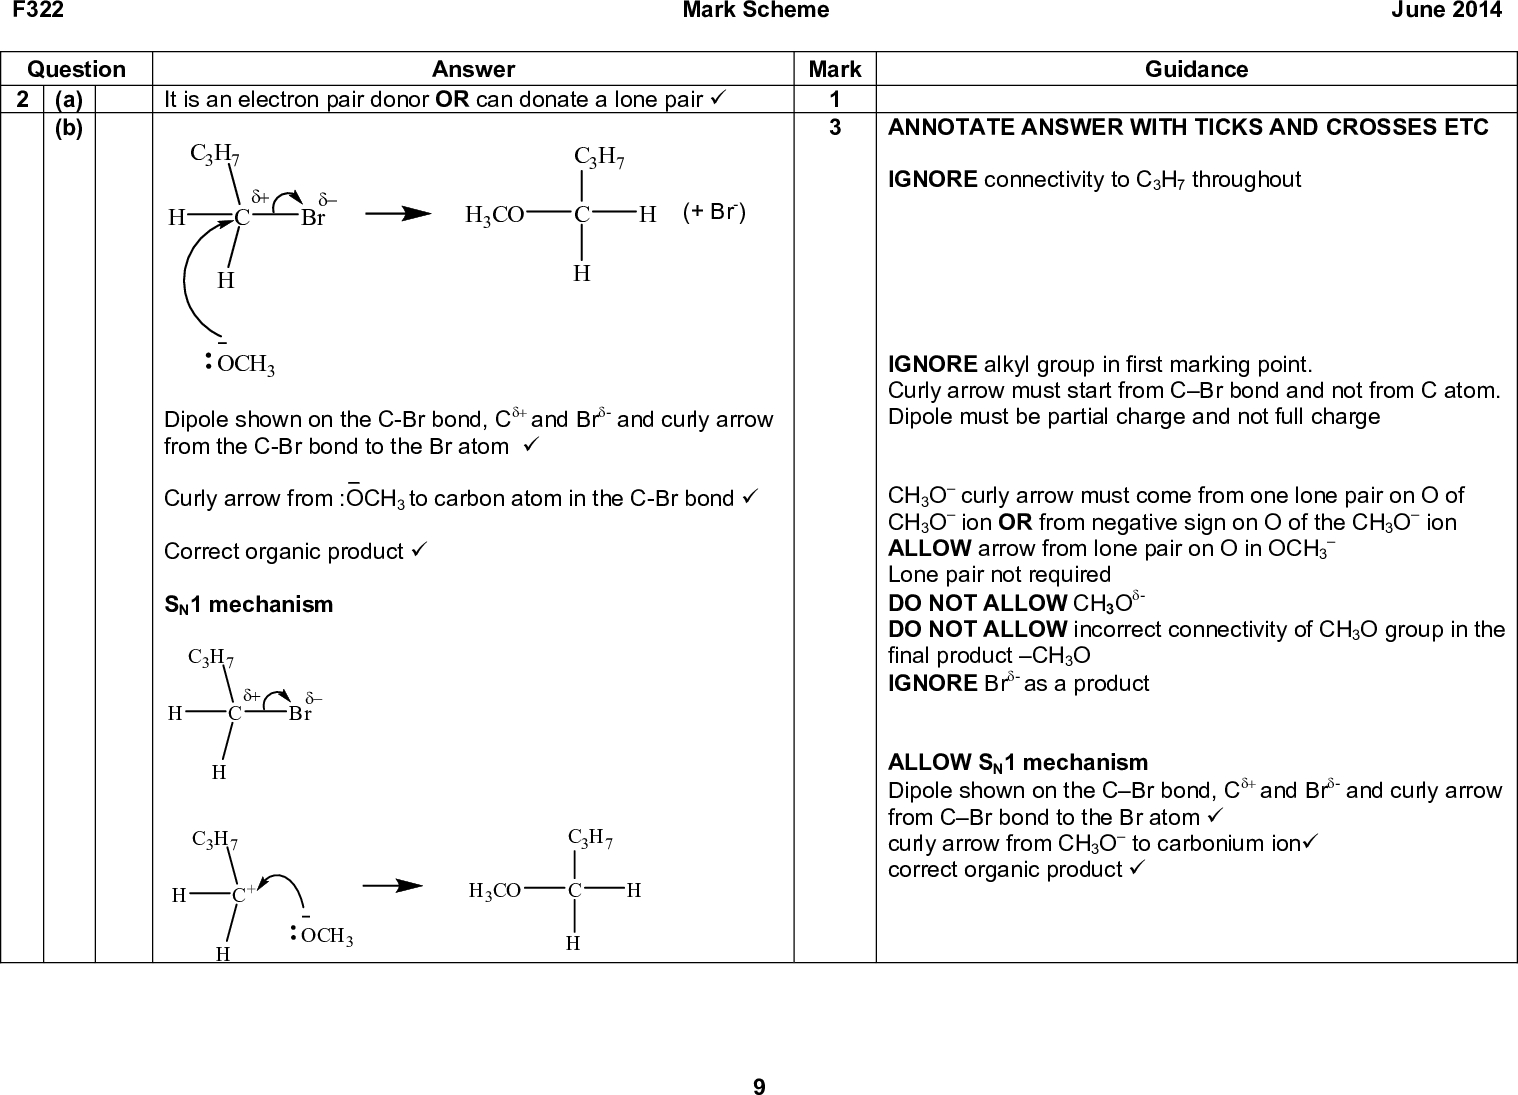 F322 Question 2 (a) (b) Mark Scheme June 2014 It is an electron pair donor OR can donate a lone pair (cid:57) Answer C3H7 C3H7 (cid:71)(cid:14) (cid:71)(cid:16) Br H3CO + Br- (+ Br-) OCH3 Dipole shown on the C-Br bond, C(cid:71)(cid:14) and Br(cid:71)- and curly arrow from the C-Br bond to the Br atom (cid:57) Curly arrow from :OCH3 to carbon atom in the C-Br bond (cid:57) Correct organic product (cid:57) SN1 mechanism C3H7 C3H7 (cid:71)(cid:14) (cid:71)(cid:16) Br C+ + Br- C3H7 C+ OCH3 H3CO C3H7 Mark 1 3 Guidance ANNOTATE ANSWER WITH TICKS AND CROSSES ETC IGNORE connectivity to C3H7 throughout IGNORE alkyl group in first marking point. Curly arrow must start from CBr bond and not from C atom. Dipole must be partial charge and not full charge CH3O curly arrow must come from one lone pair on O of CH3O ion OR from negative sign on O of the CH3O ion ALLOW arrow from lone pair on O in OCH3 Lone pair not required DO NOT ALLOW CH3O(cid:71)- DO NOT ALLOW incorrect connectivity of CH3O group in the final product CH3O IGNORE Br(cid:71)- as a product ALLOW SN1 mechanism Dipole shown on the CBr bond, C(cid:71)(cid:14) and Br(cid:71)- and curly arrow from CBr bond to the Br atom (cid:57) curly arrow from CH3O to carbonium ion(cid:57) correct organic product (cid:57)<br />  F322 Question (c) (d) (e) (i) (e) (e) Answer (cid:57) 1-Iodobutane increases the rate AND CI bonds are weaker (than CBr) OR CI bond has a lower bond enthalpy OR CI bond needs a smaller amount of energy to break OR CI bond is easier to break (cid:57) butyl ethanoate (cid:57) (cid:57) ( 136.9100 ) = 47% 291.1(cid:57) (ii) NaBr OR LiBr (cid:57) (iii) Look at answer if 88.8% AWARD 3 marks if 88.75% AWARD 2 marks (not 3 sig. fig.) Moles of butan-1-ol = 0.08(00) (cid:57) Moles of 1-bromobutane = 0.071(0) (cid:57) % yield = 88.8% (cid:57) Total 12 10 Mark Scheme June 2014 Mark Guidance All statements must be comparative ALLOW ORA IGNORE CI bond is longer IGNORE polarity and references to electronegativity ALLOW only